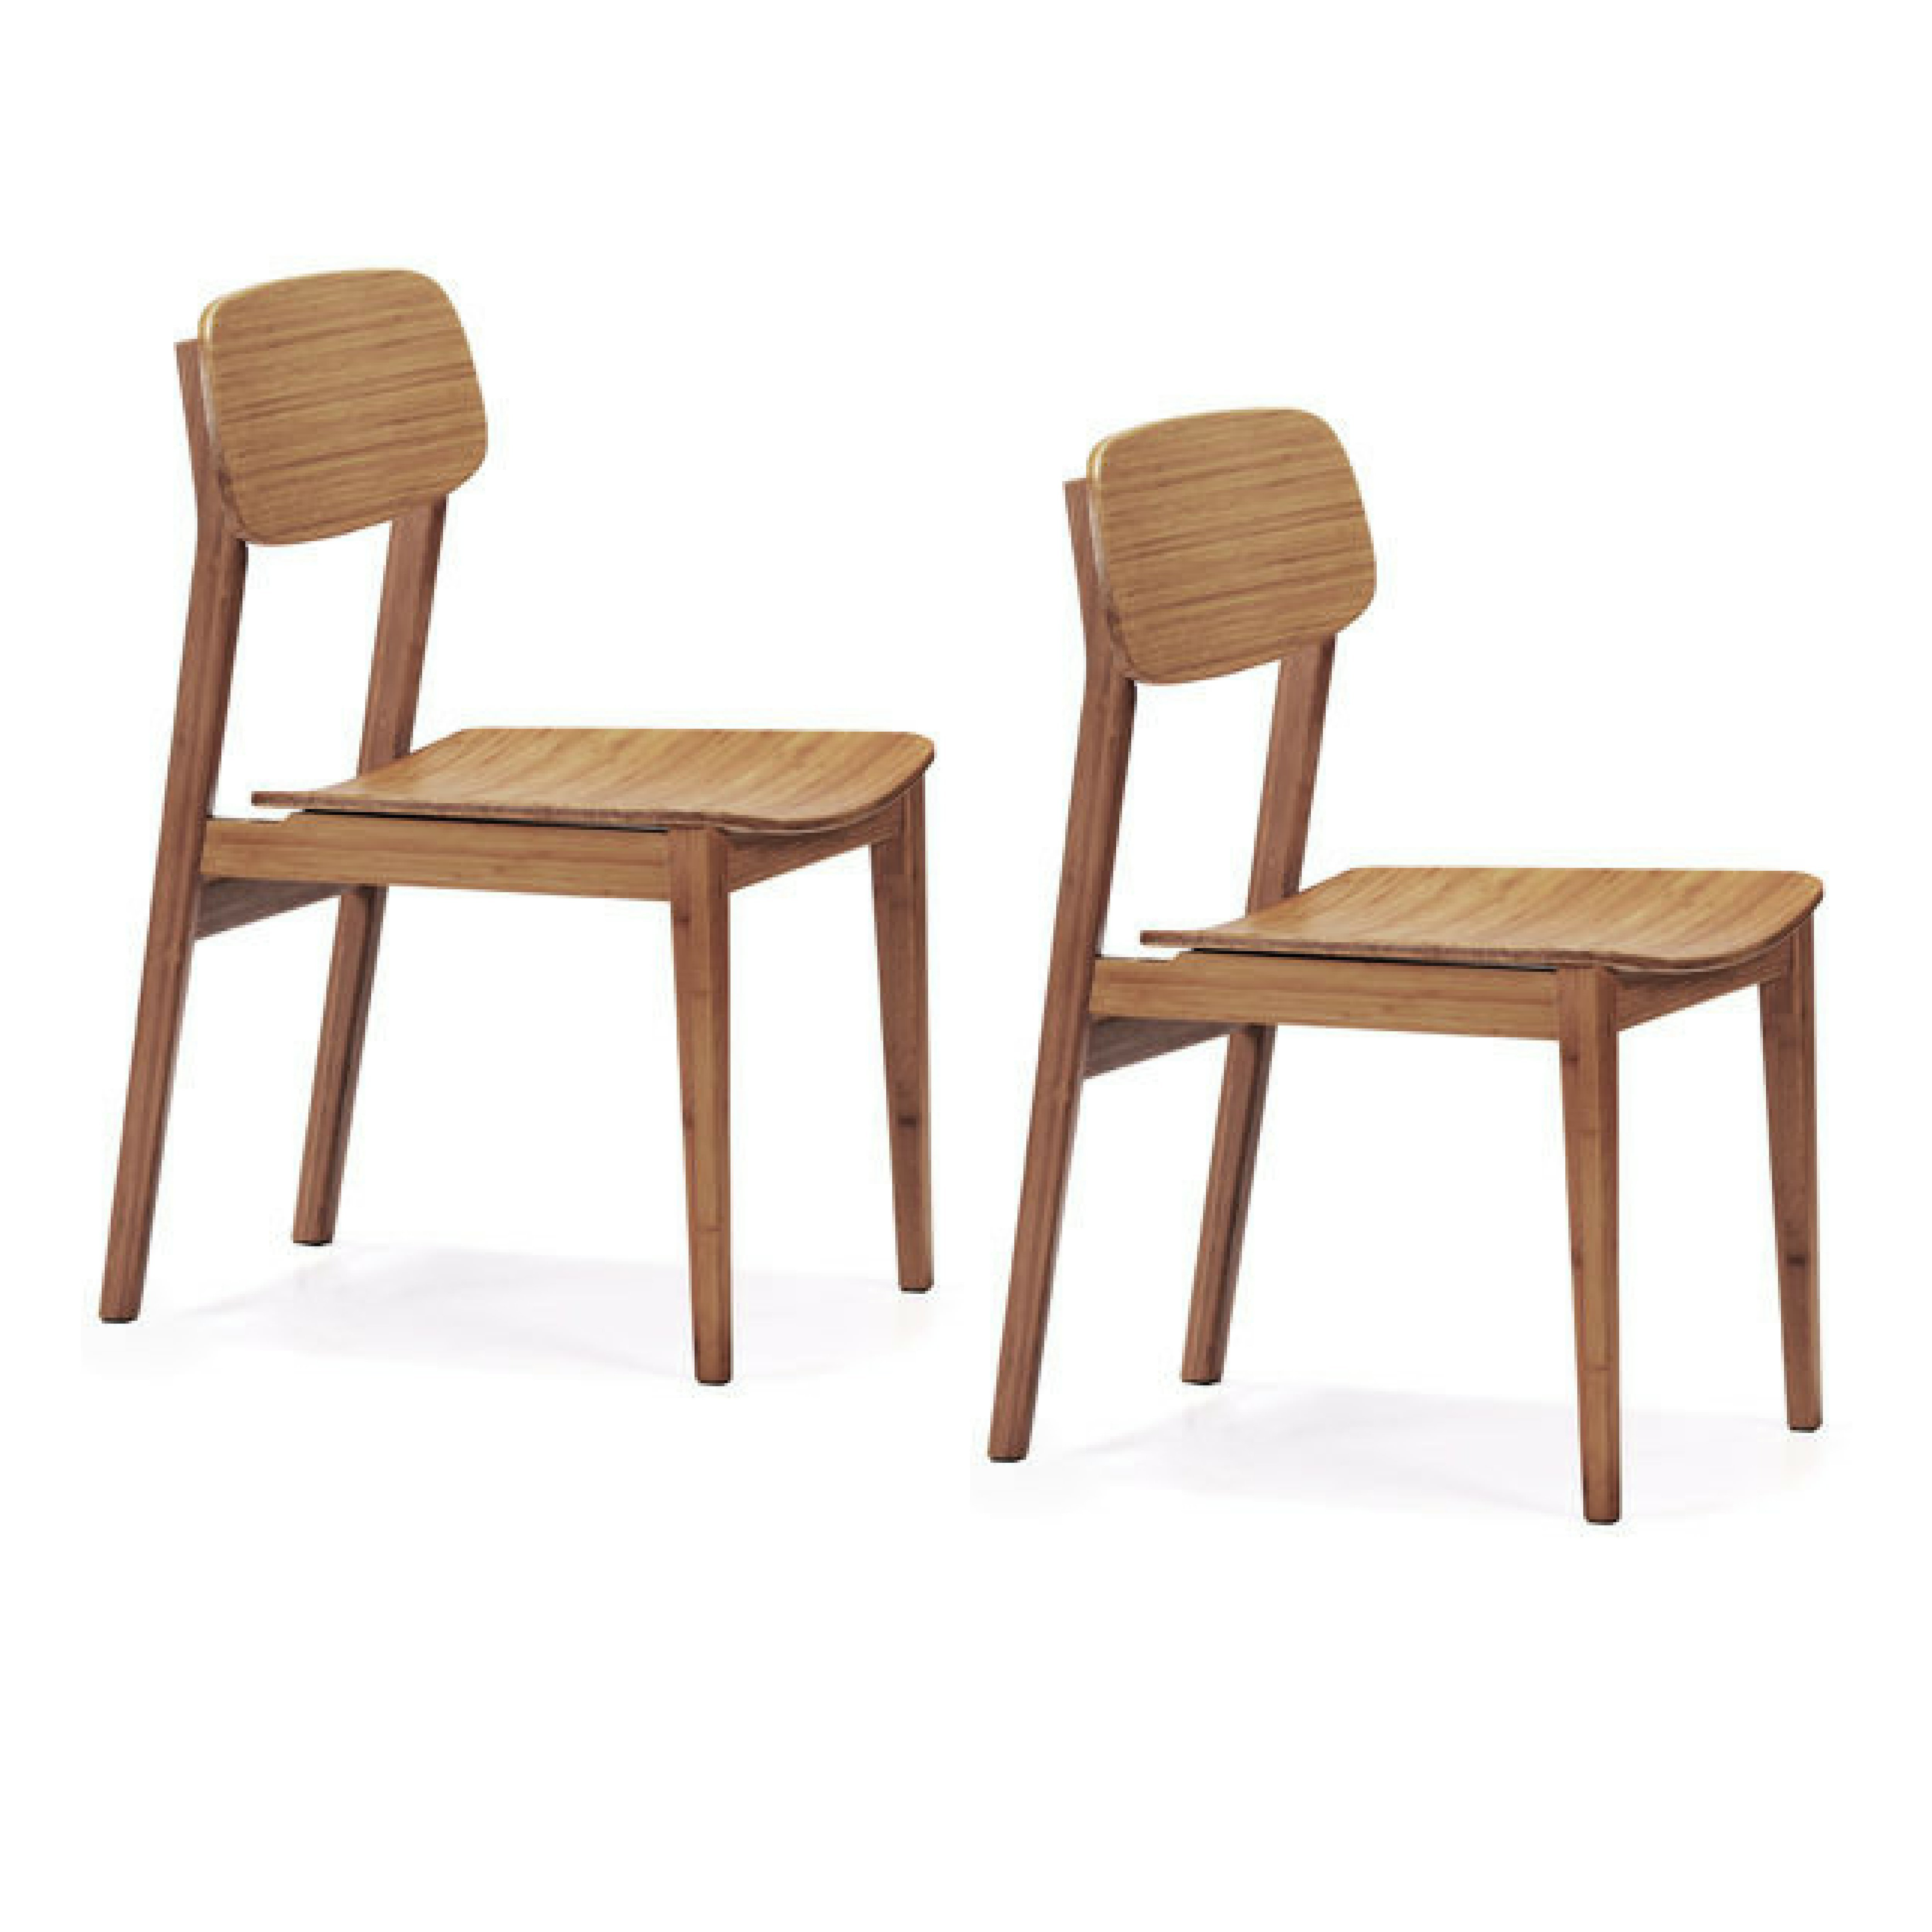 Bamboo Chairs Greenington Currant Bamboo Dining Chairs Set Of Two